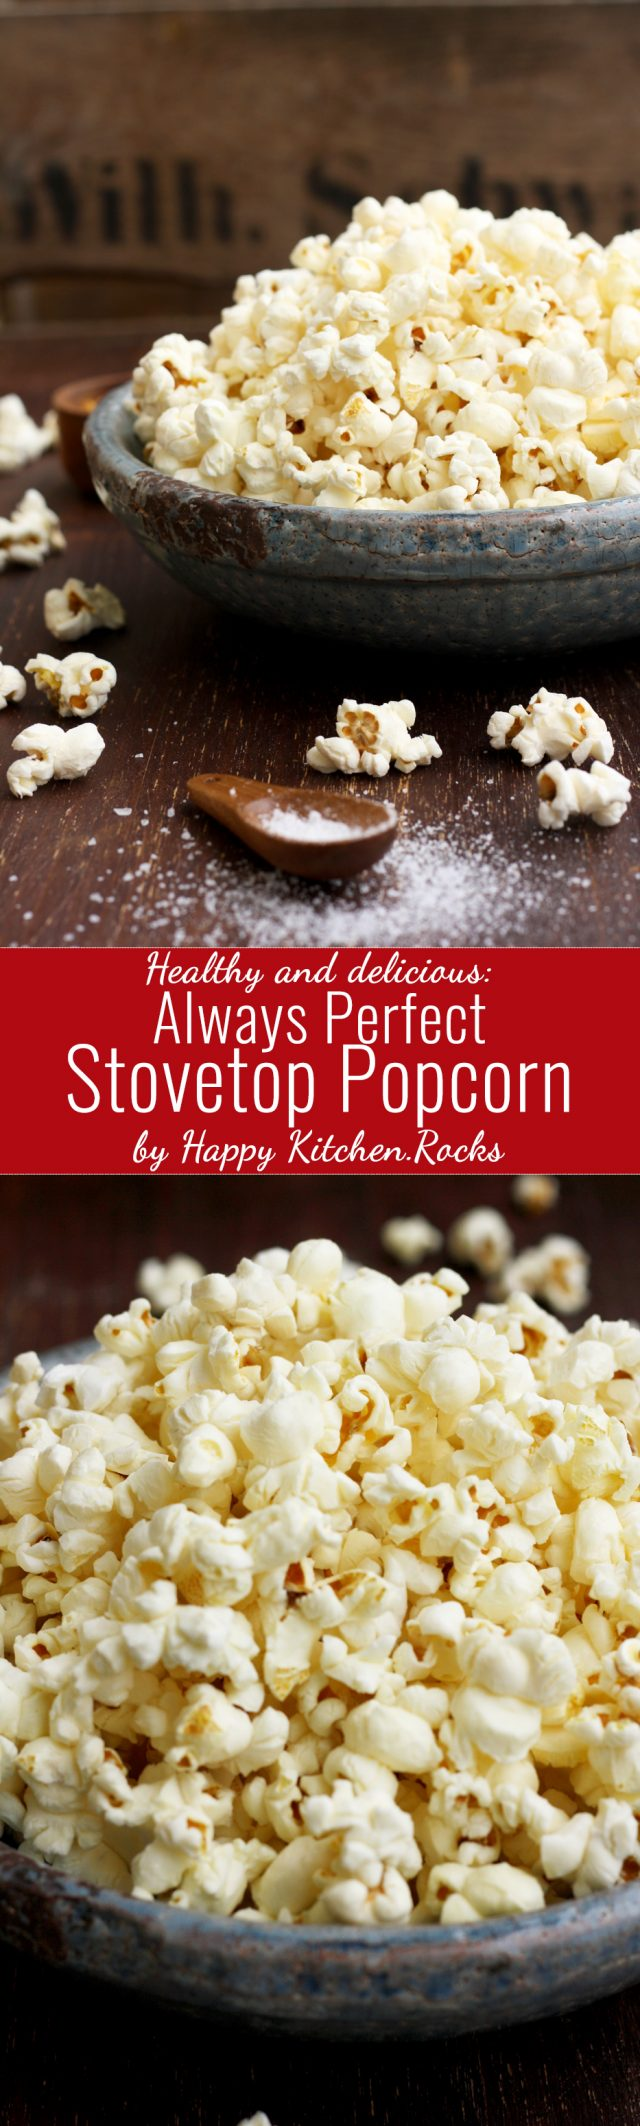 Stovetop popcorn makes for a great healthy snack ready within minutes! With this easy recipe your stovetop popcorn will always come out perfectly popped!